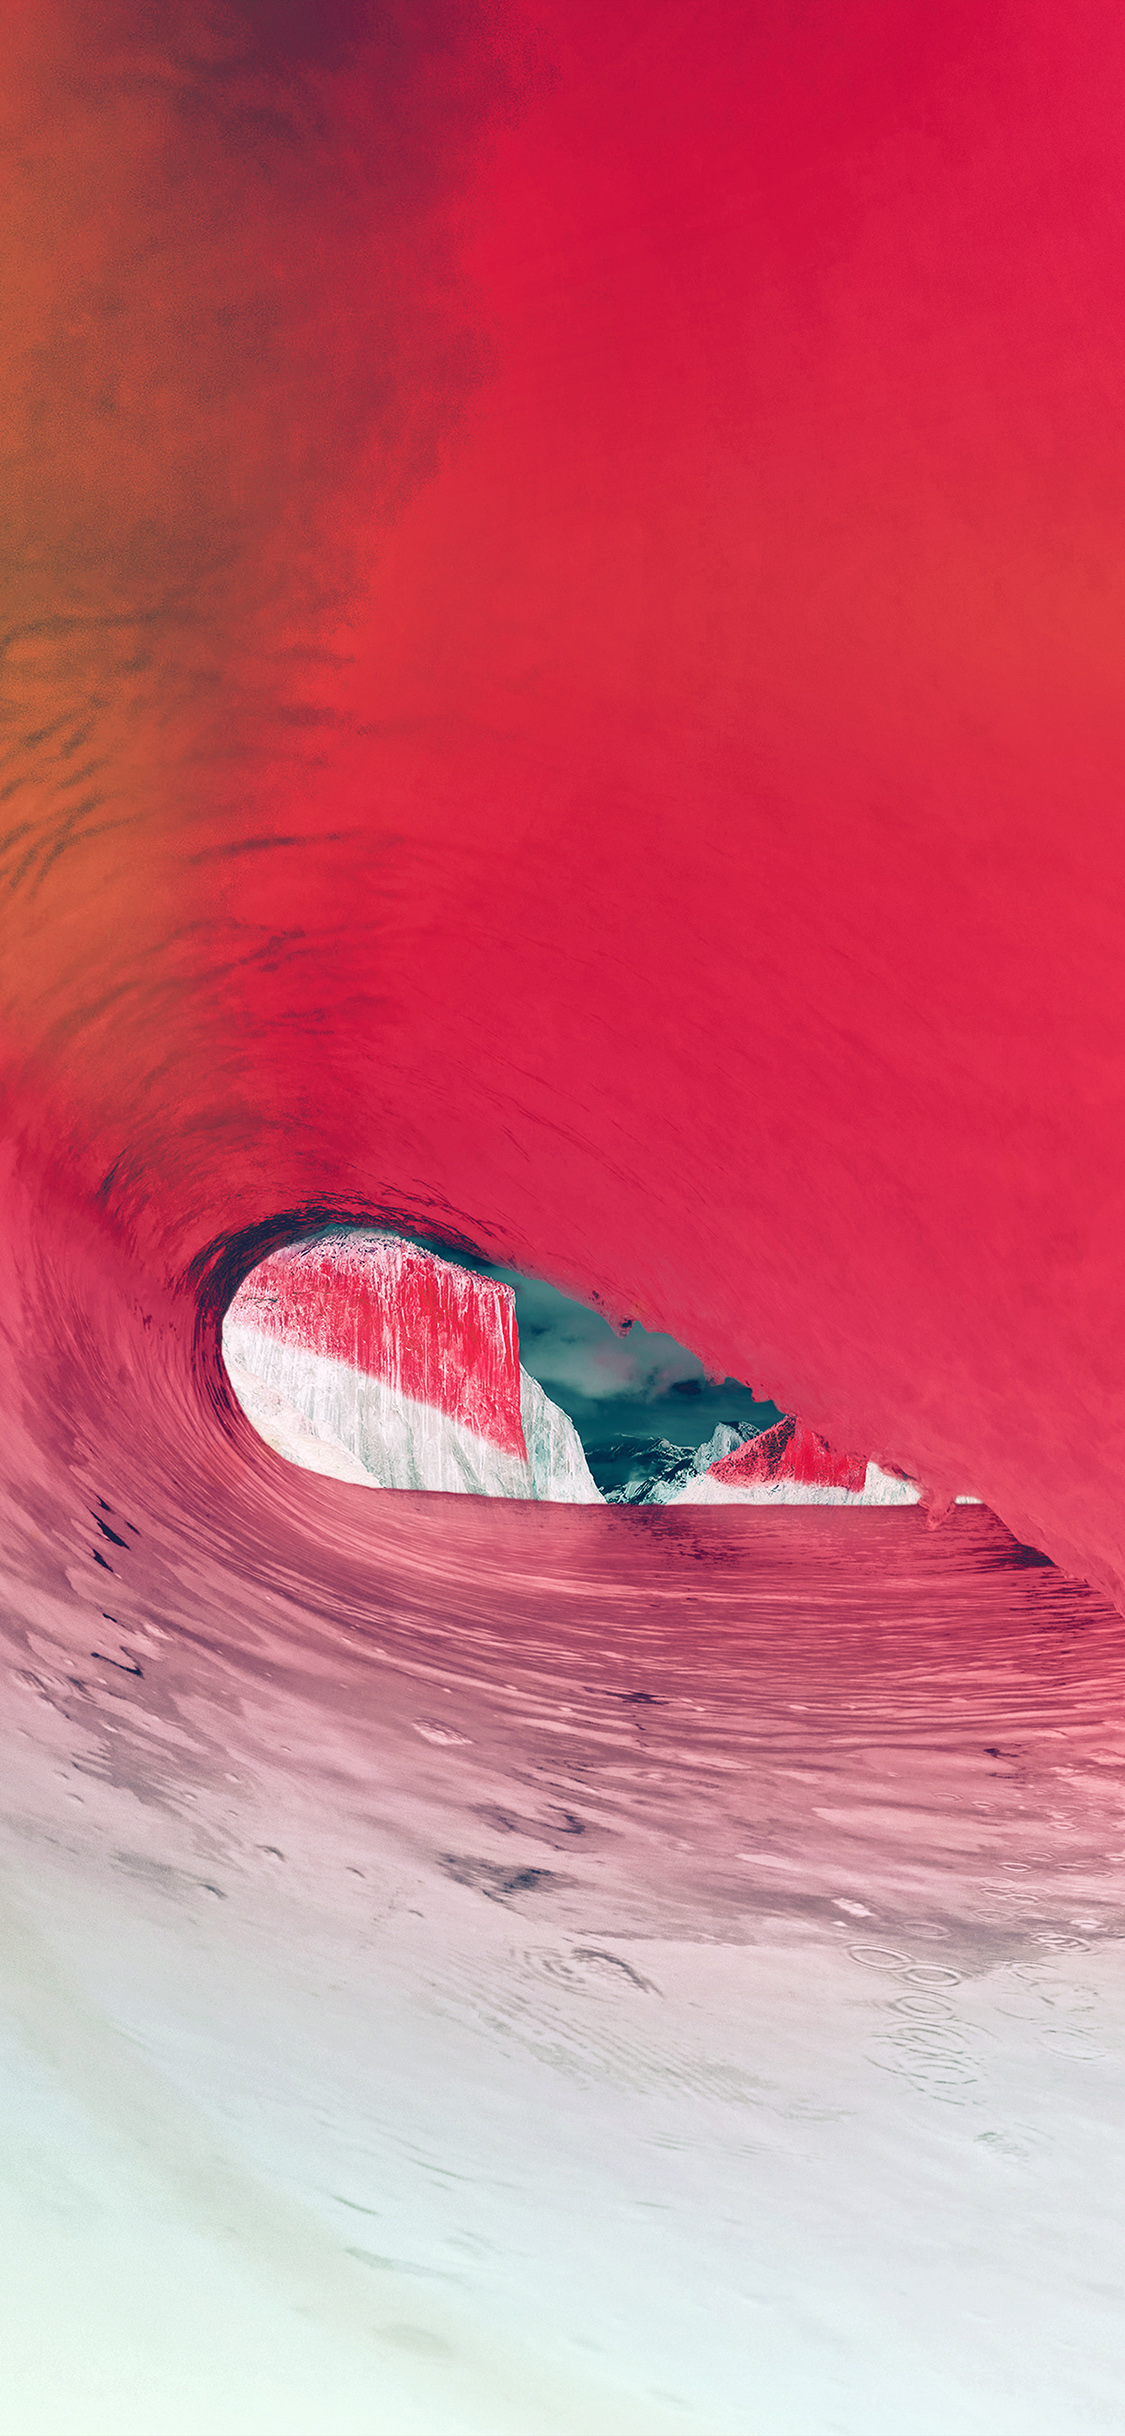 iPhoneXpapers.com-Apple-iPhone-wallpaper-mw08-apple-osx-yosemite-wave-sea-red